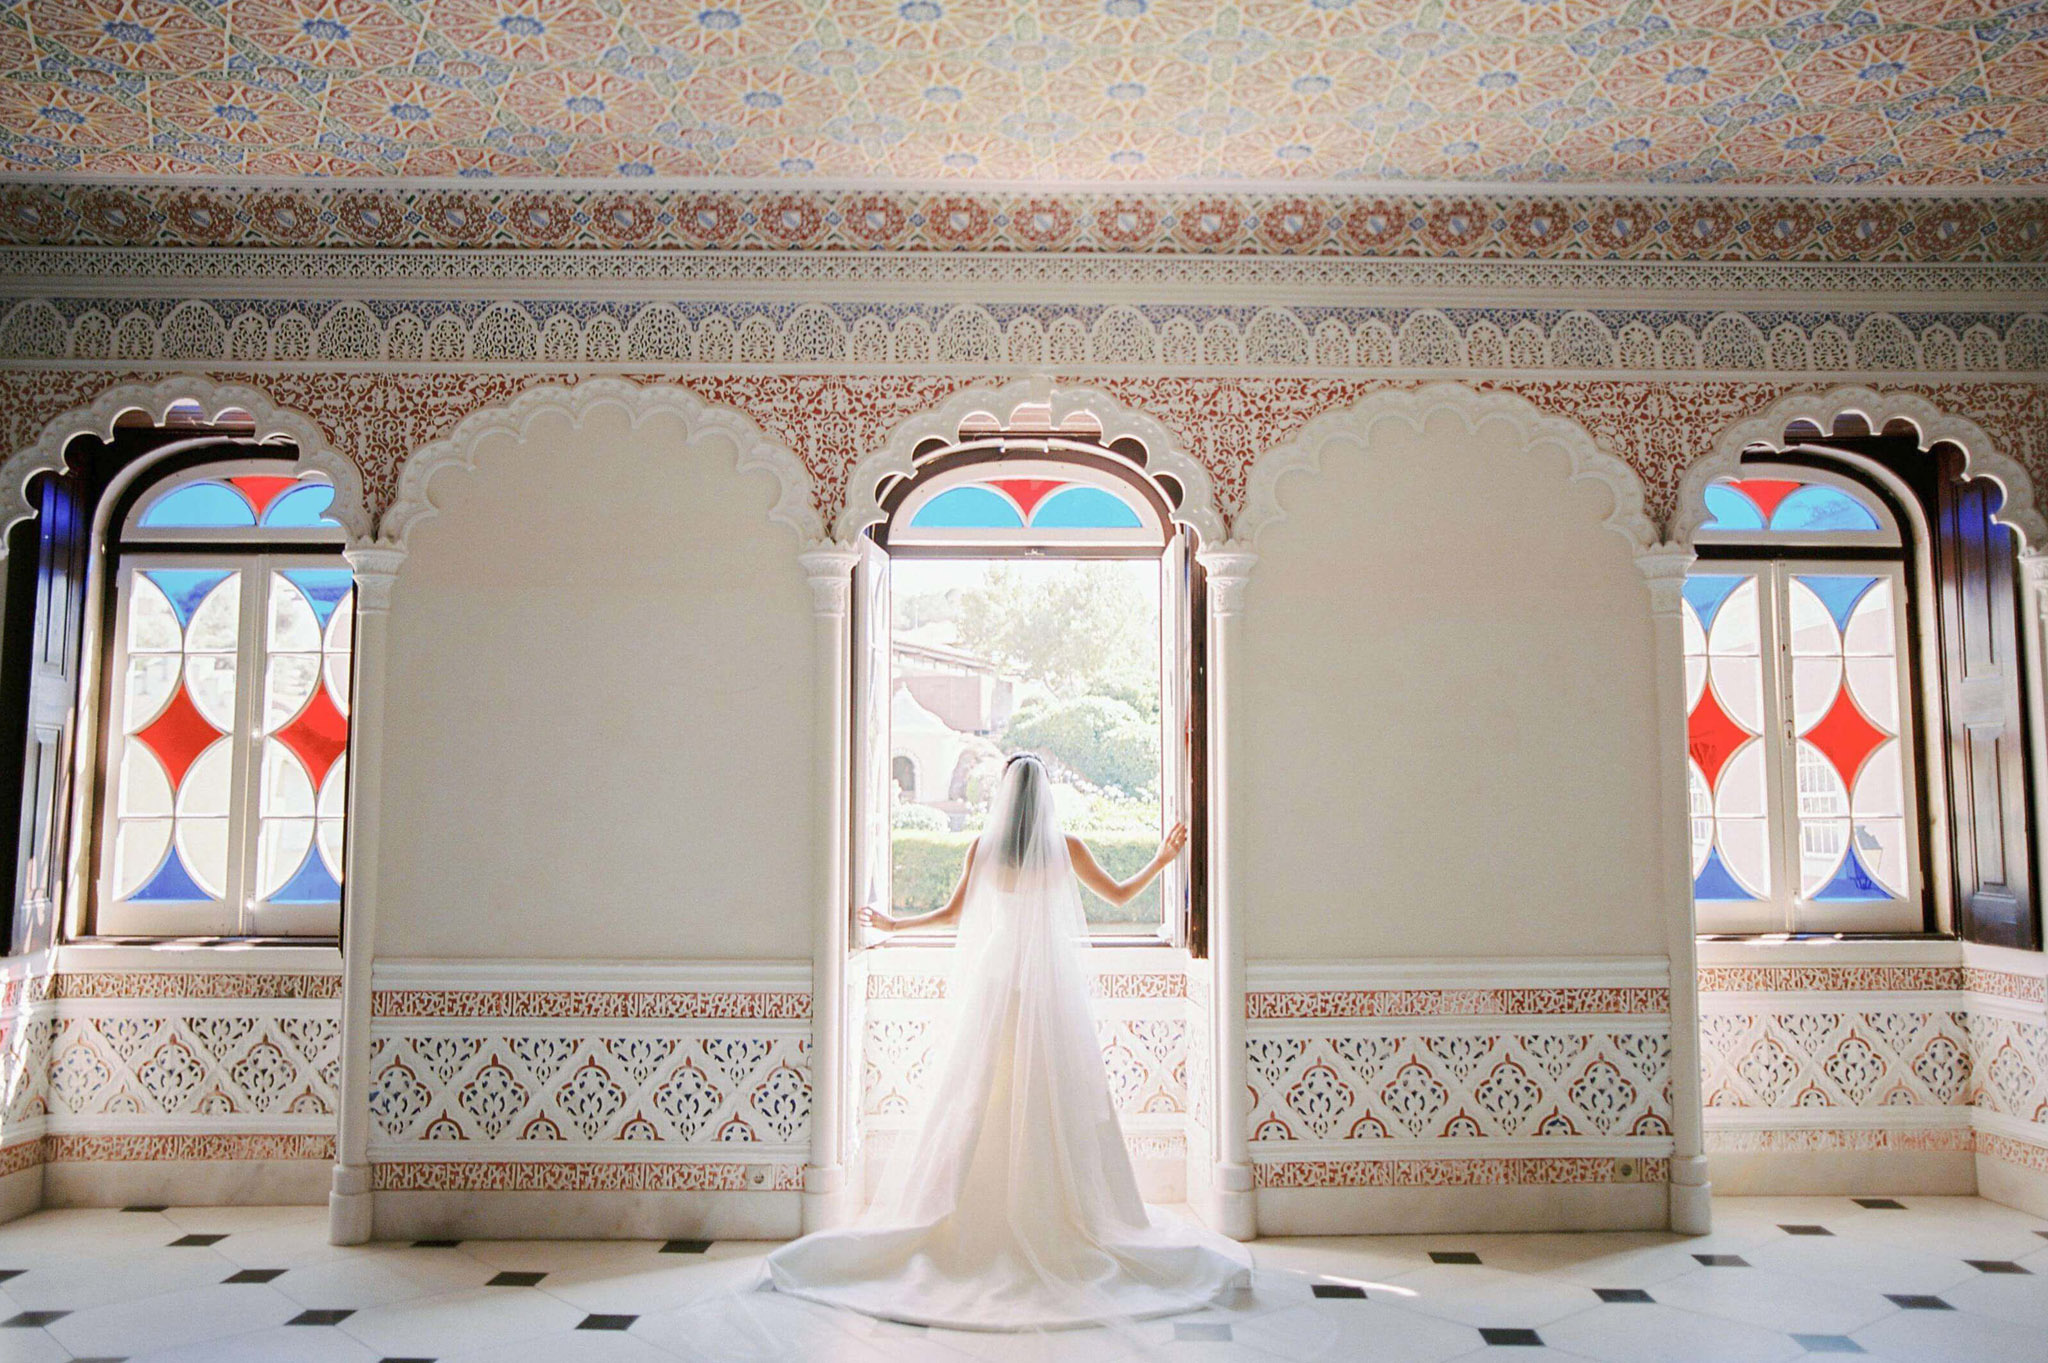 PWP - Wedding in Sintra - Maria & Andrew